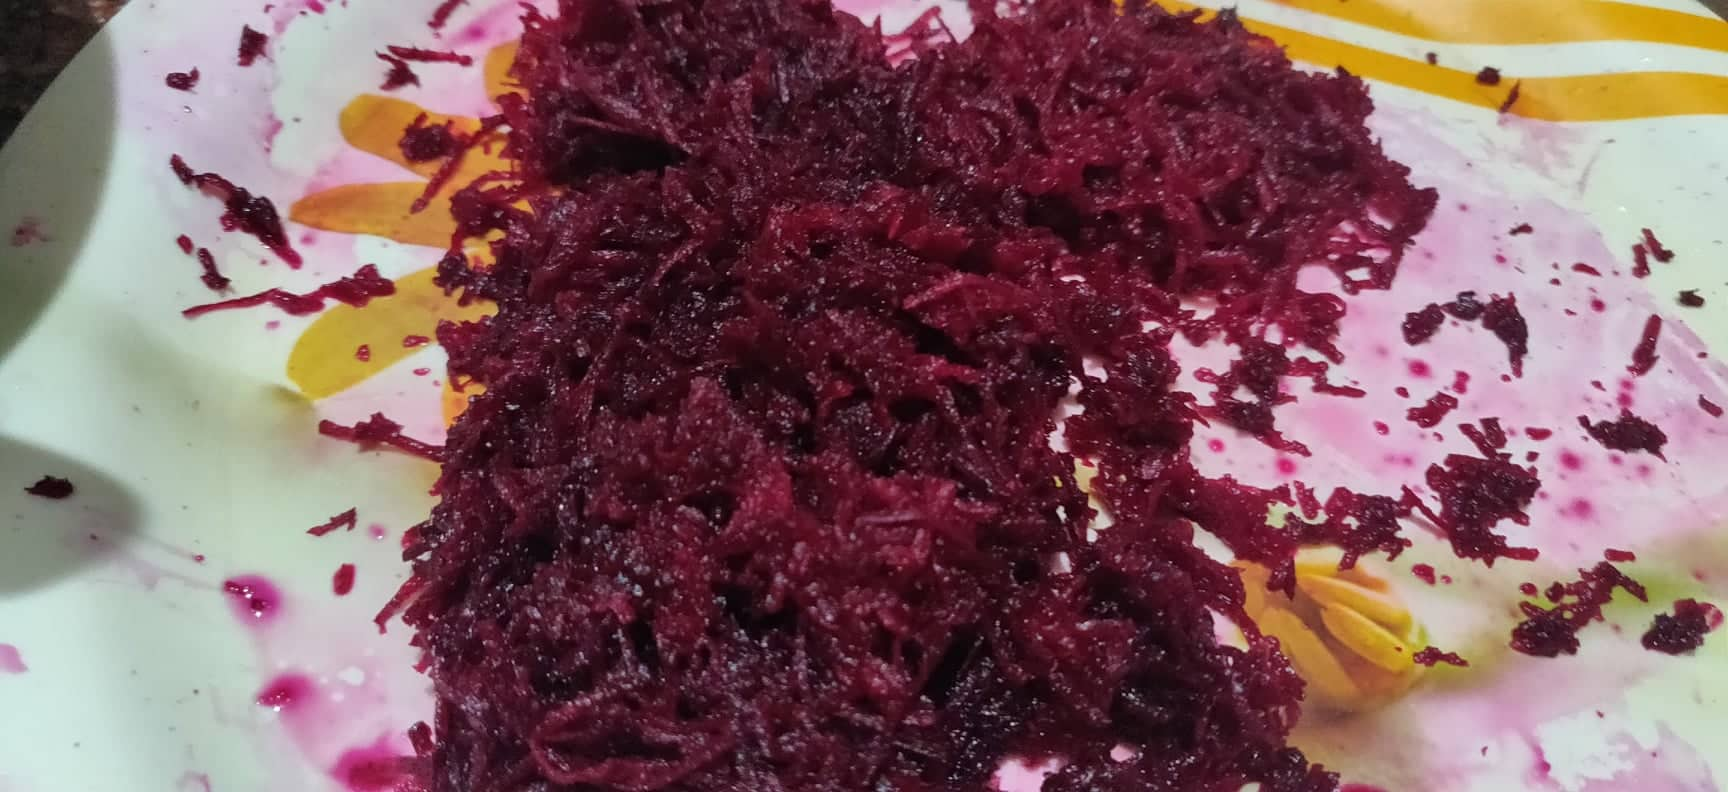 beetroot_rice - 82425205_2552680861673002_1739081457000775680_n